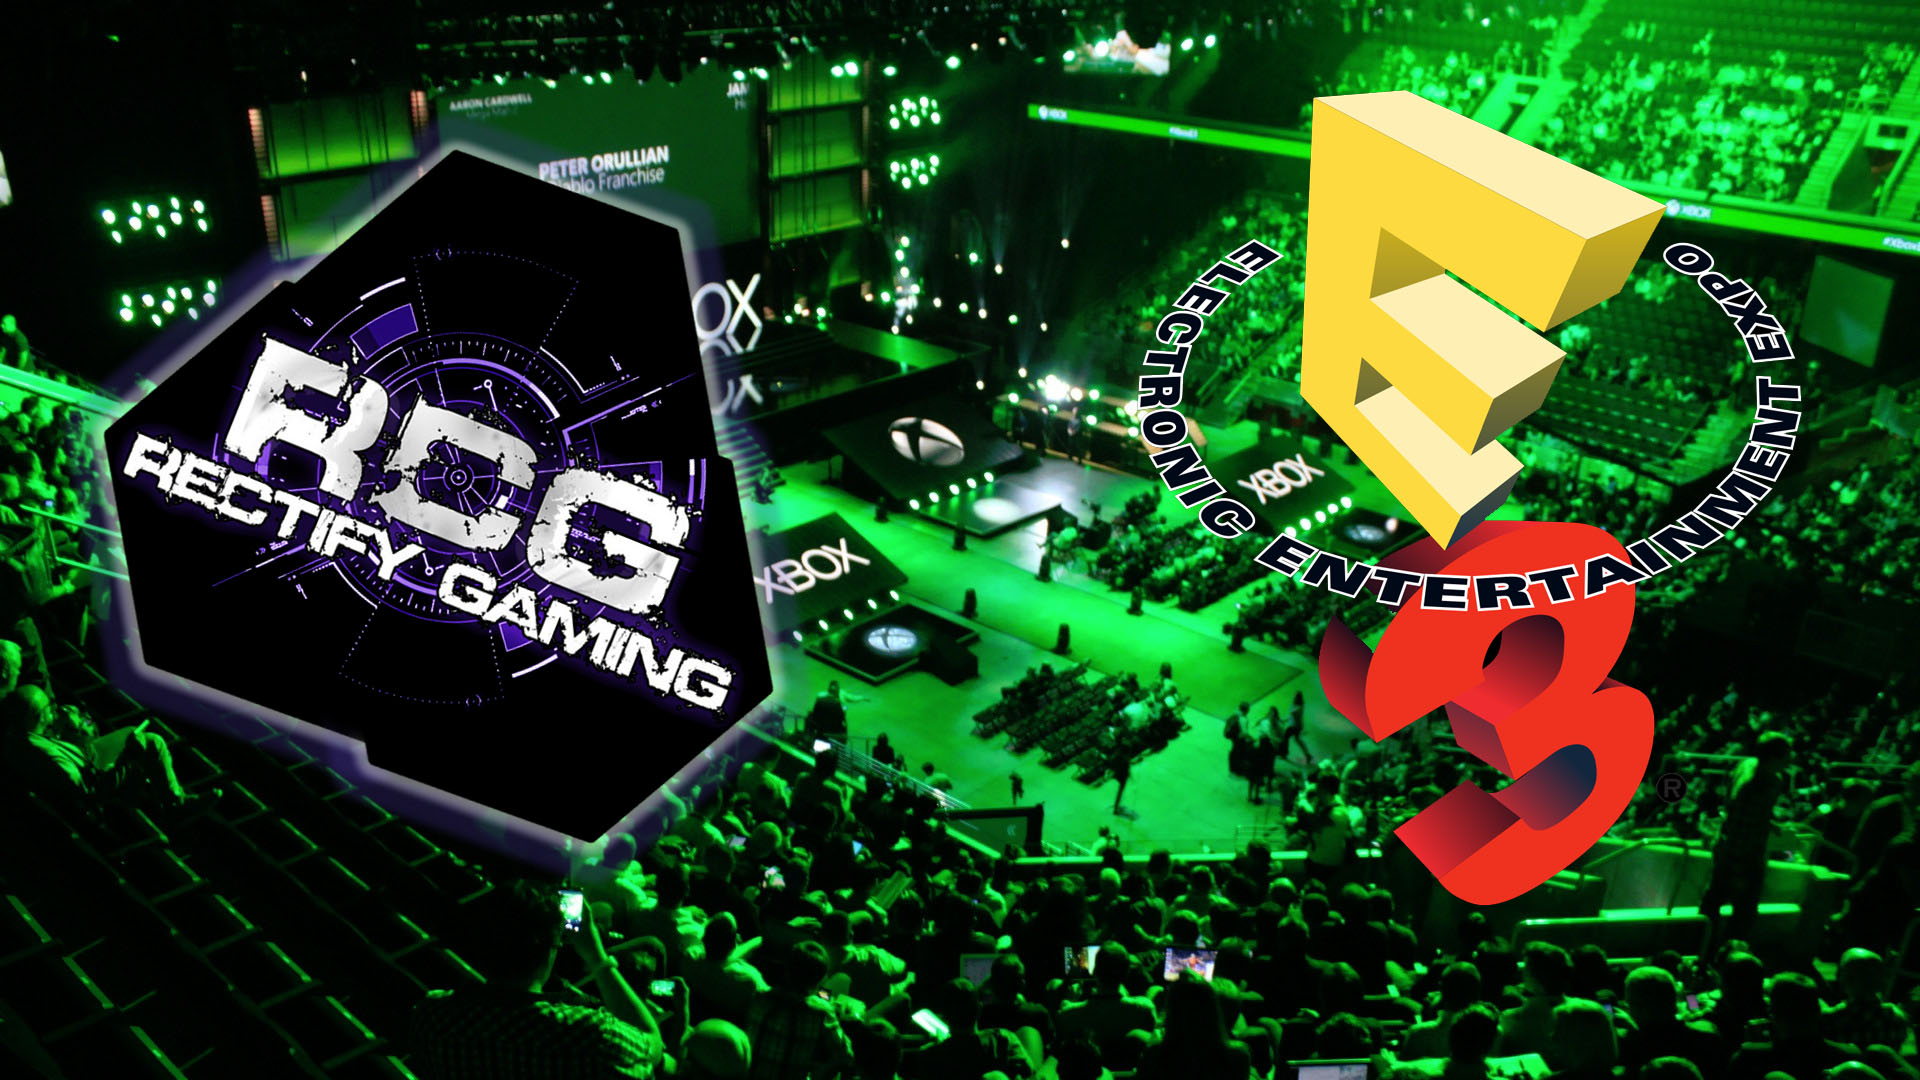 E3 2016: Xbox, Ubisoft, and Sony Conference Impressions